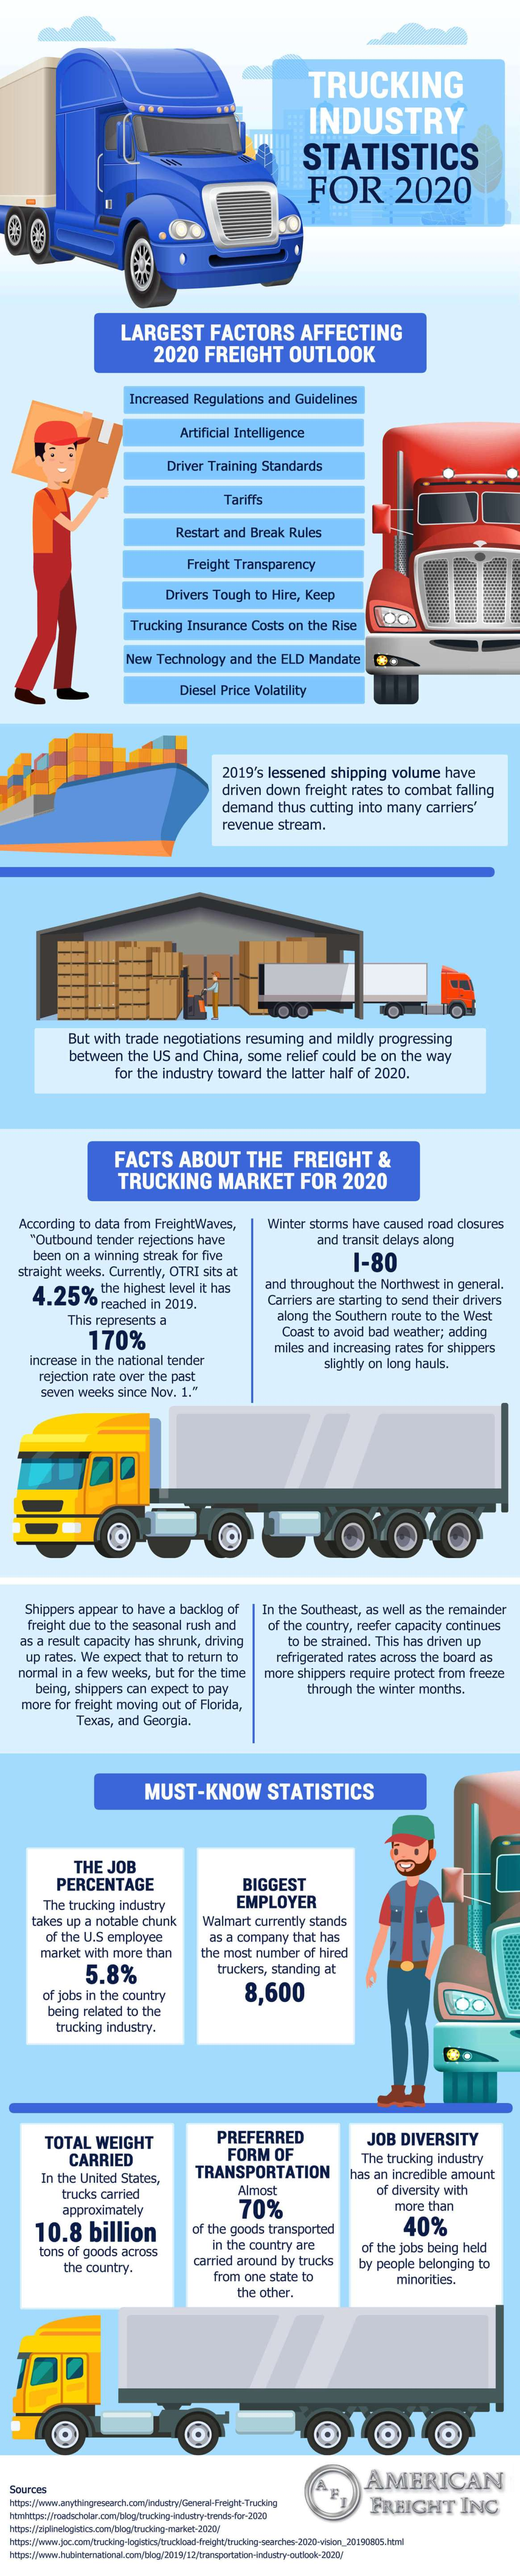 American Trucking Industry Statistics For 2020